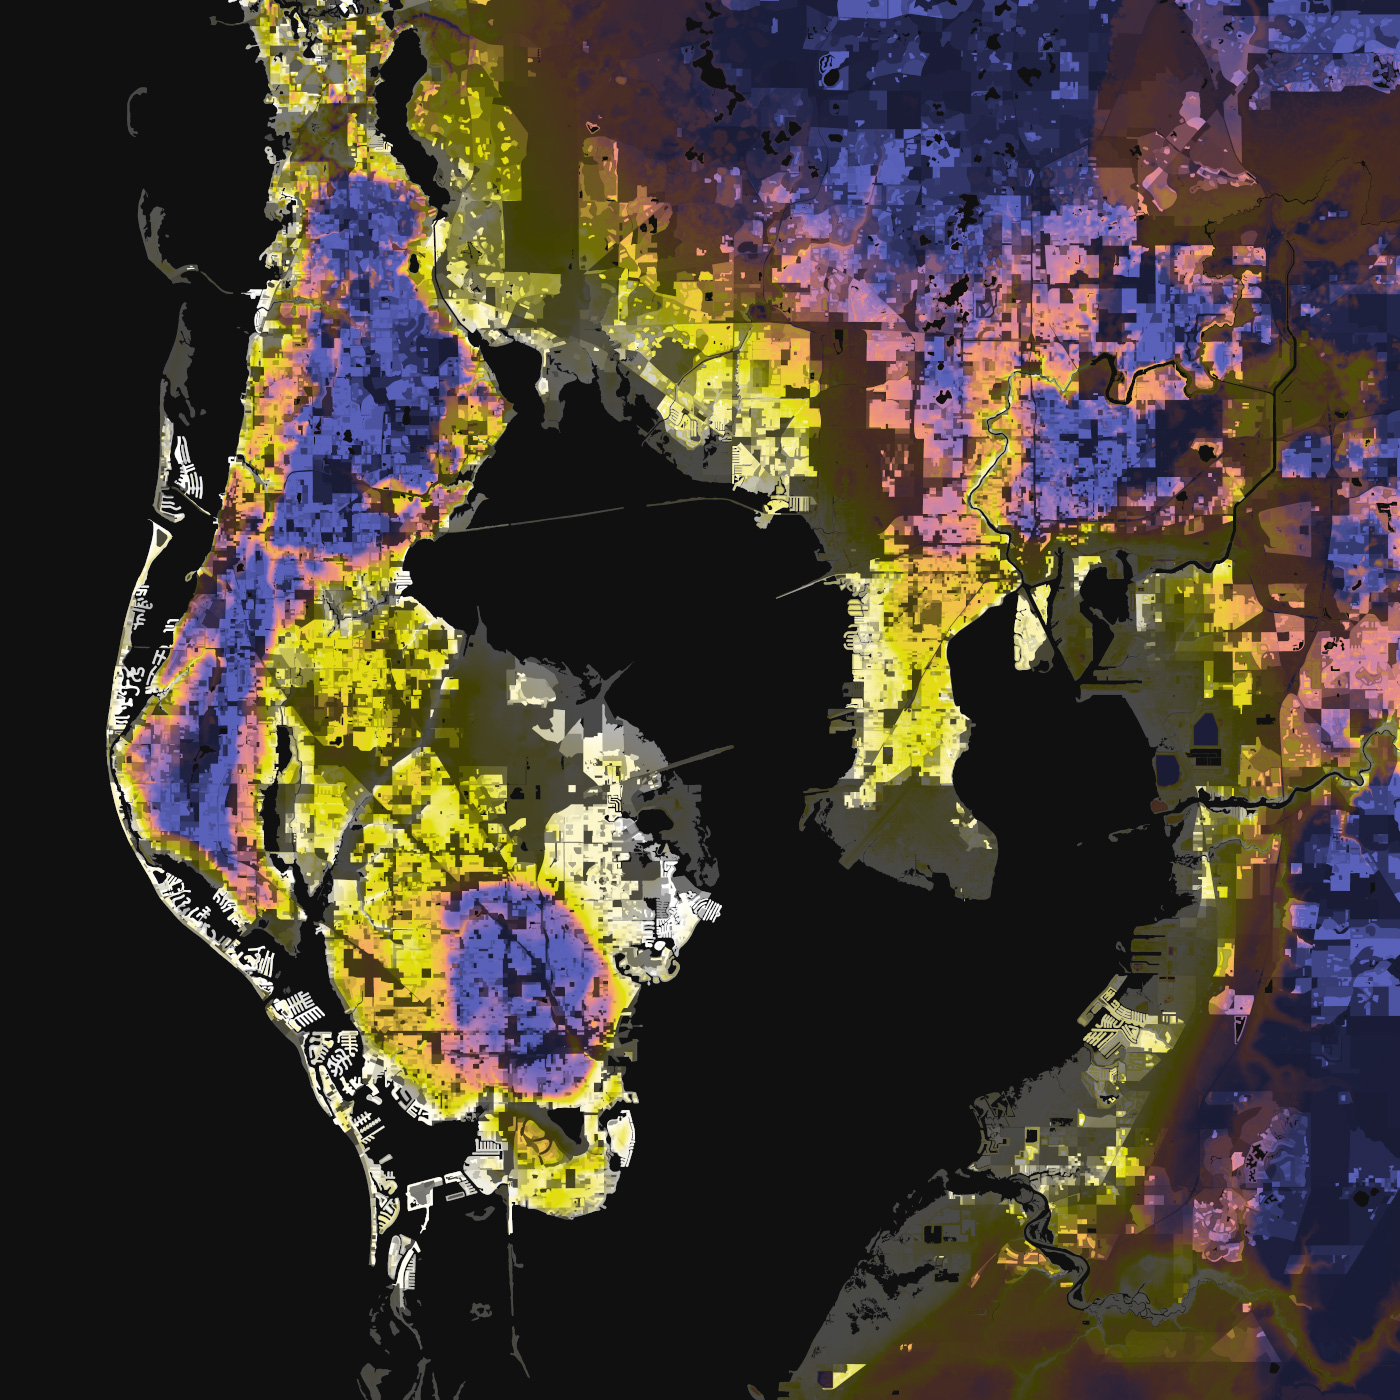 Tampa-St. Petersburg, Florida – Elevation And Population Density, 2010 - Florida Elevation Map Above Sea Level